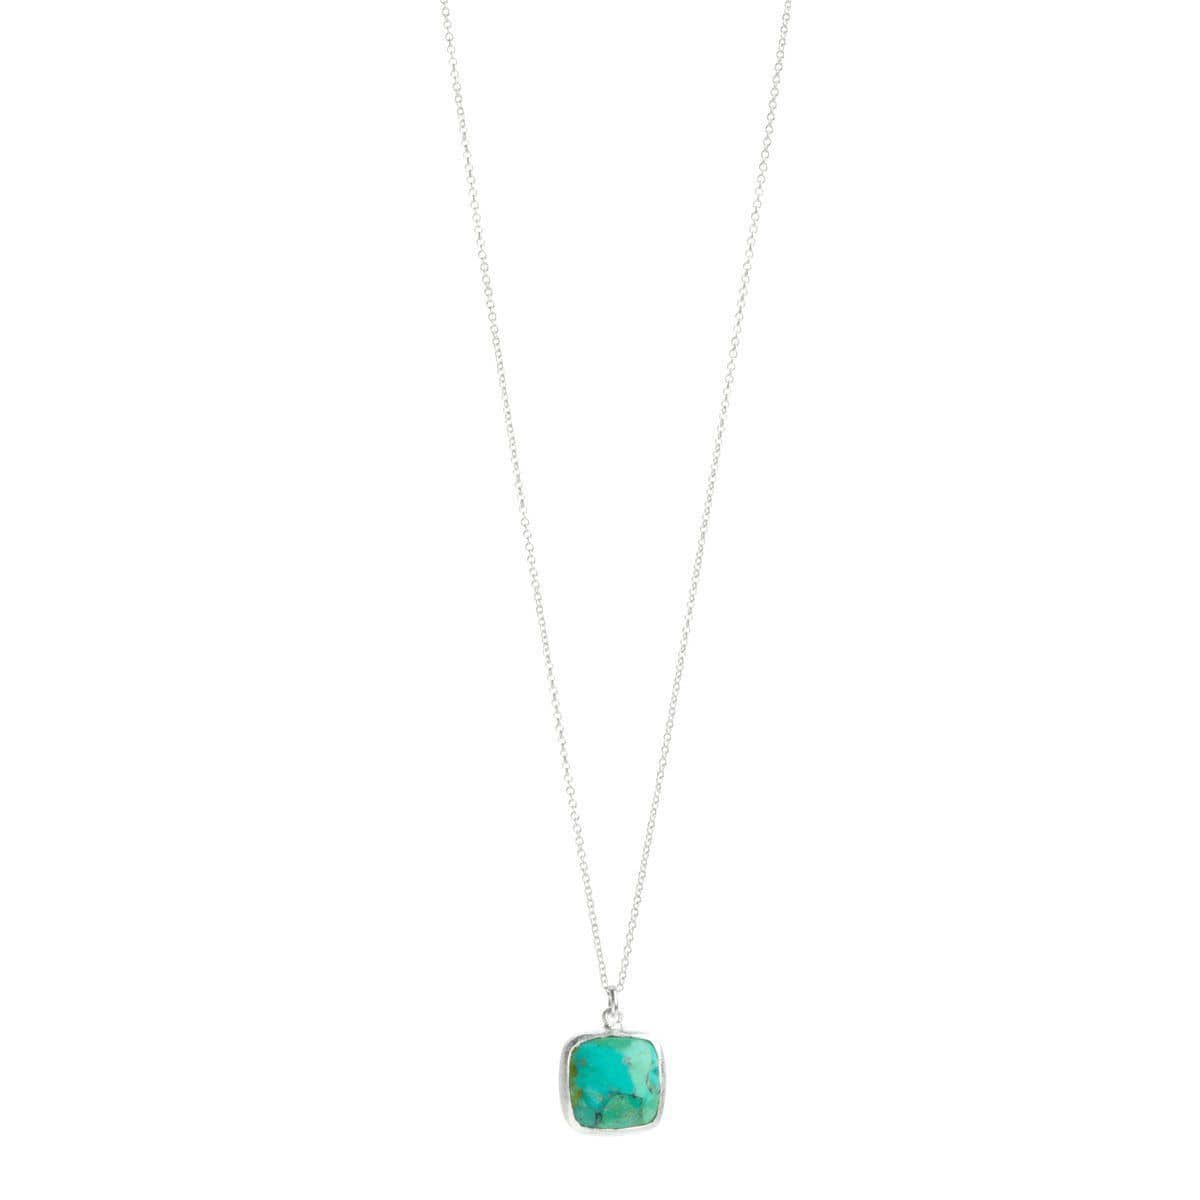 Dharma Sterling Silver with Turquoise Necklace - S7015N-TRQ-Nina Nguyen-Renee Taylor Gallery